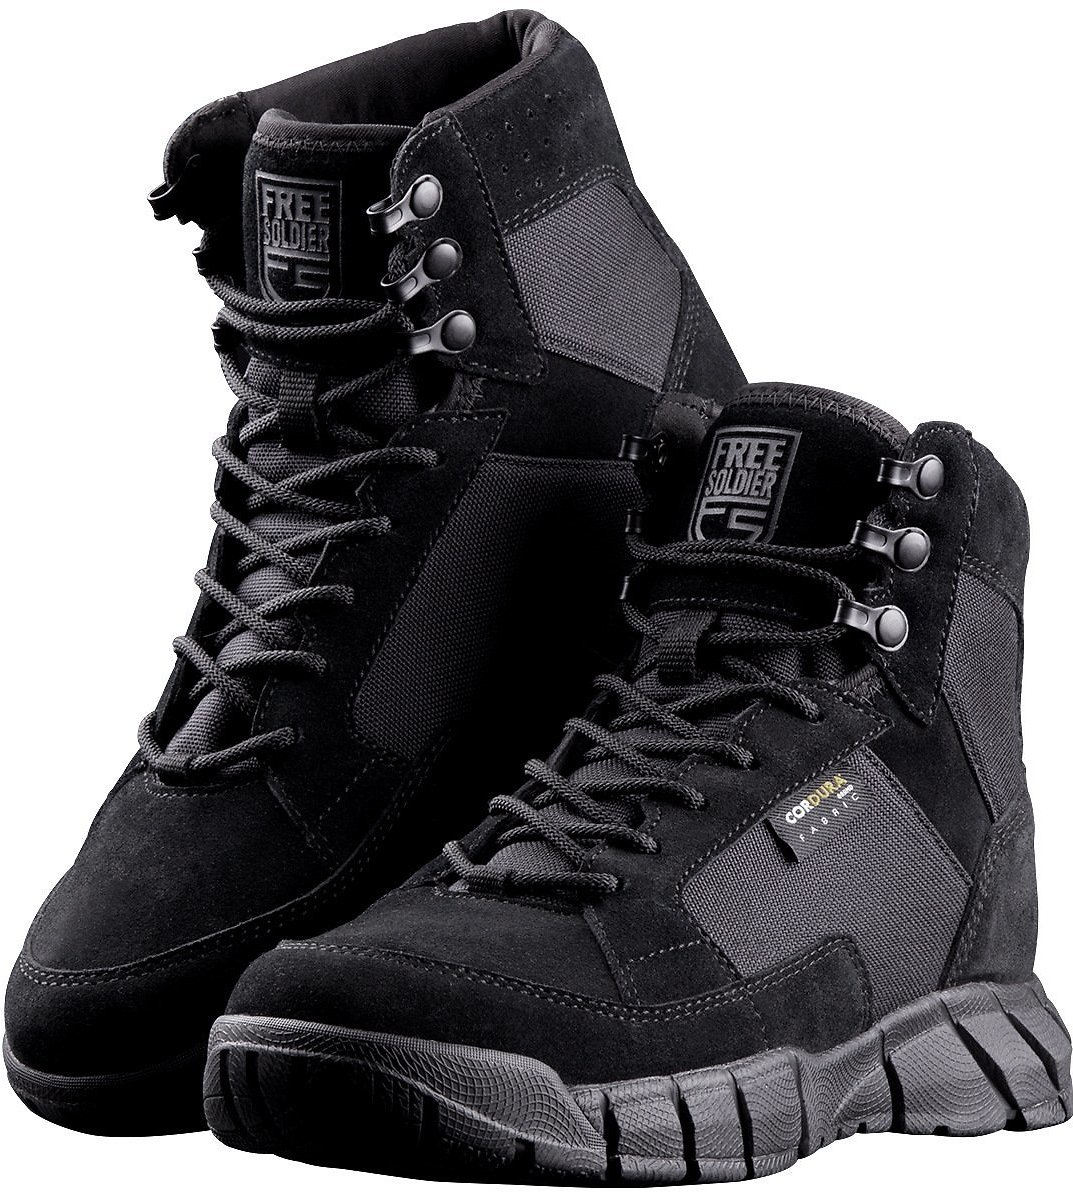 40% Off FREE SOLDIER Men's Tactical Boots 6 Inch Lightweight Breathable Military Boots for Hiking Work Boots